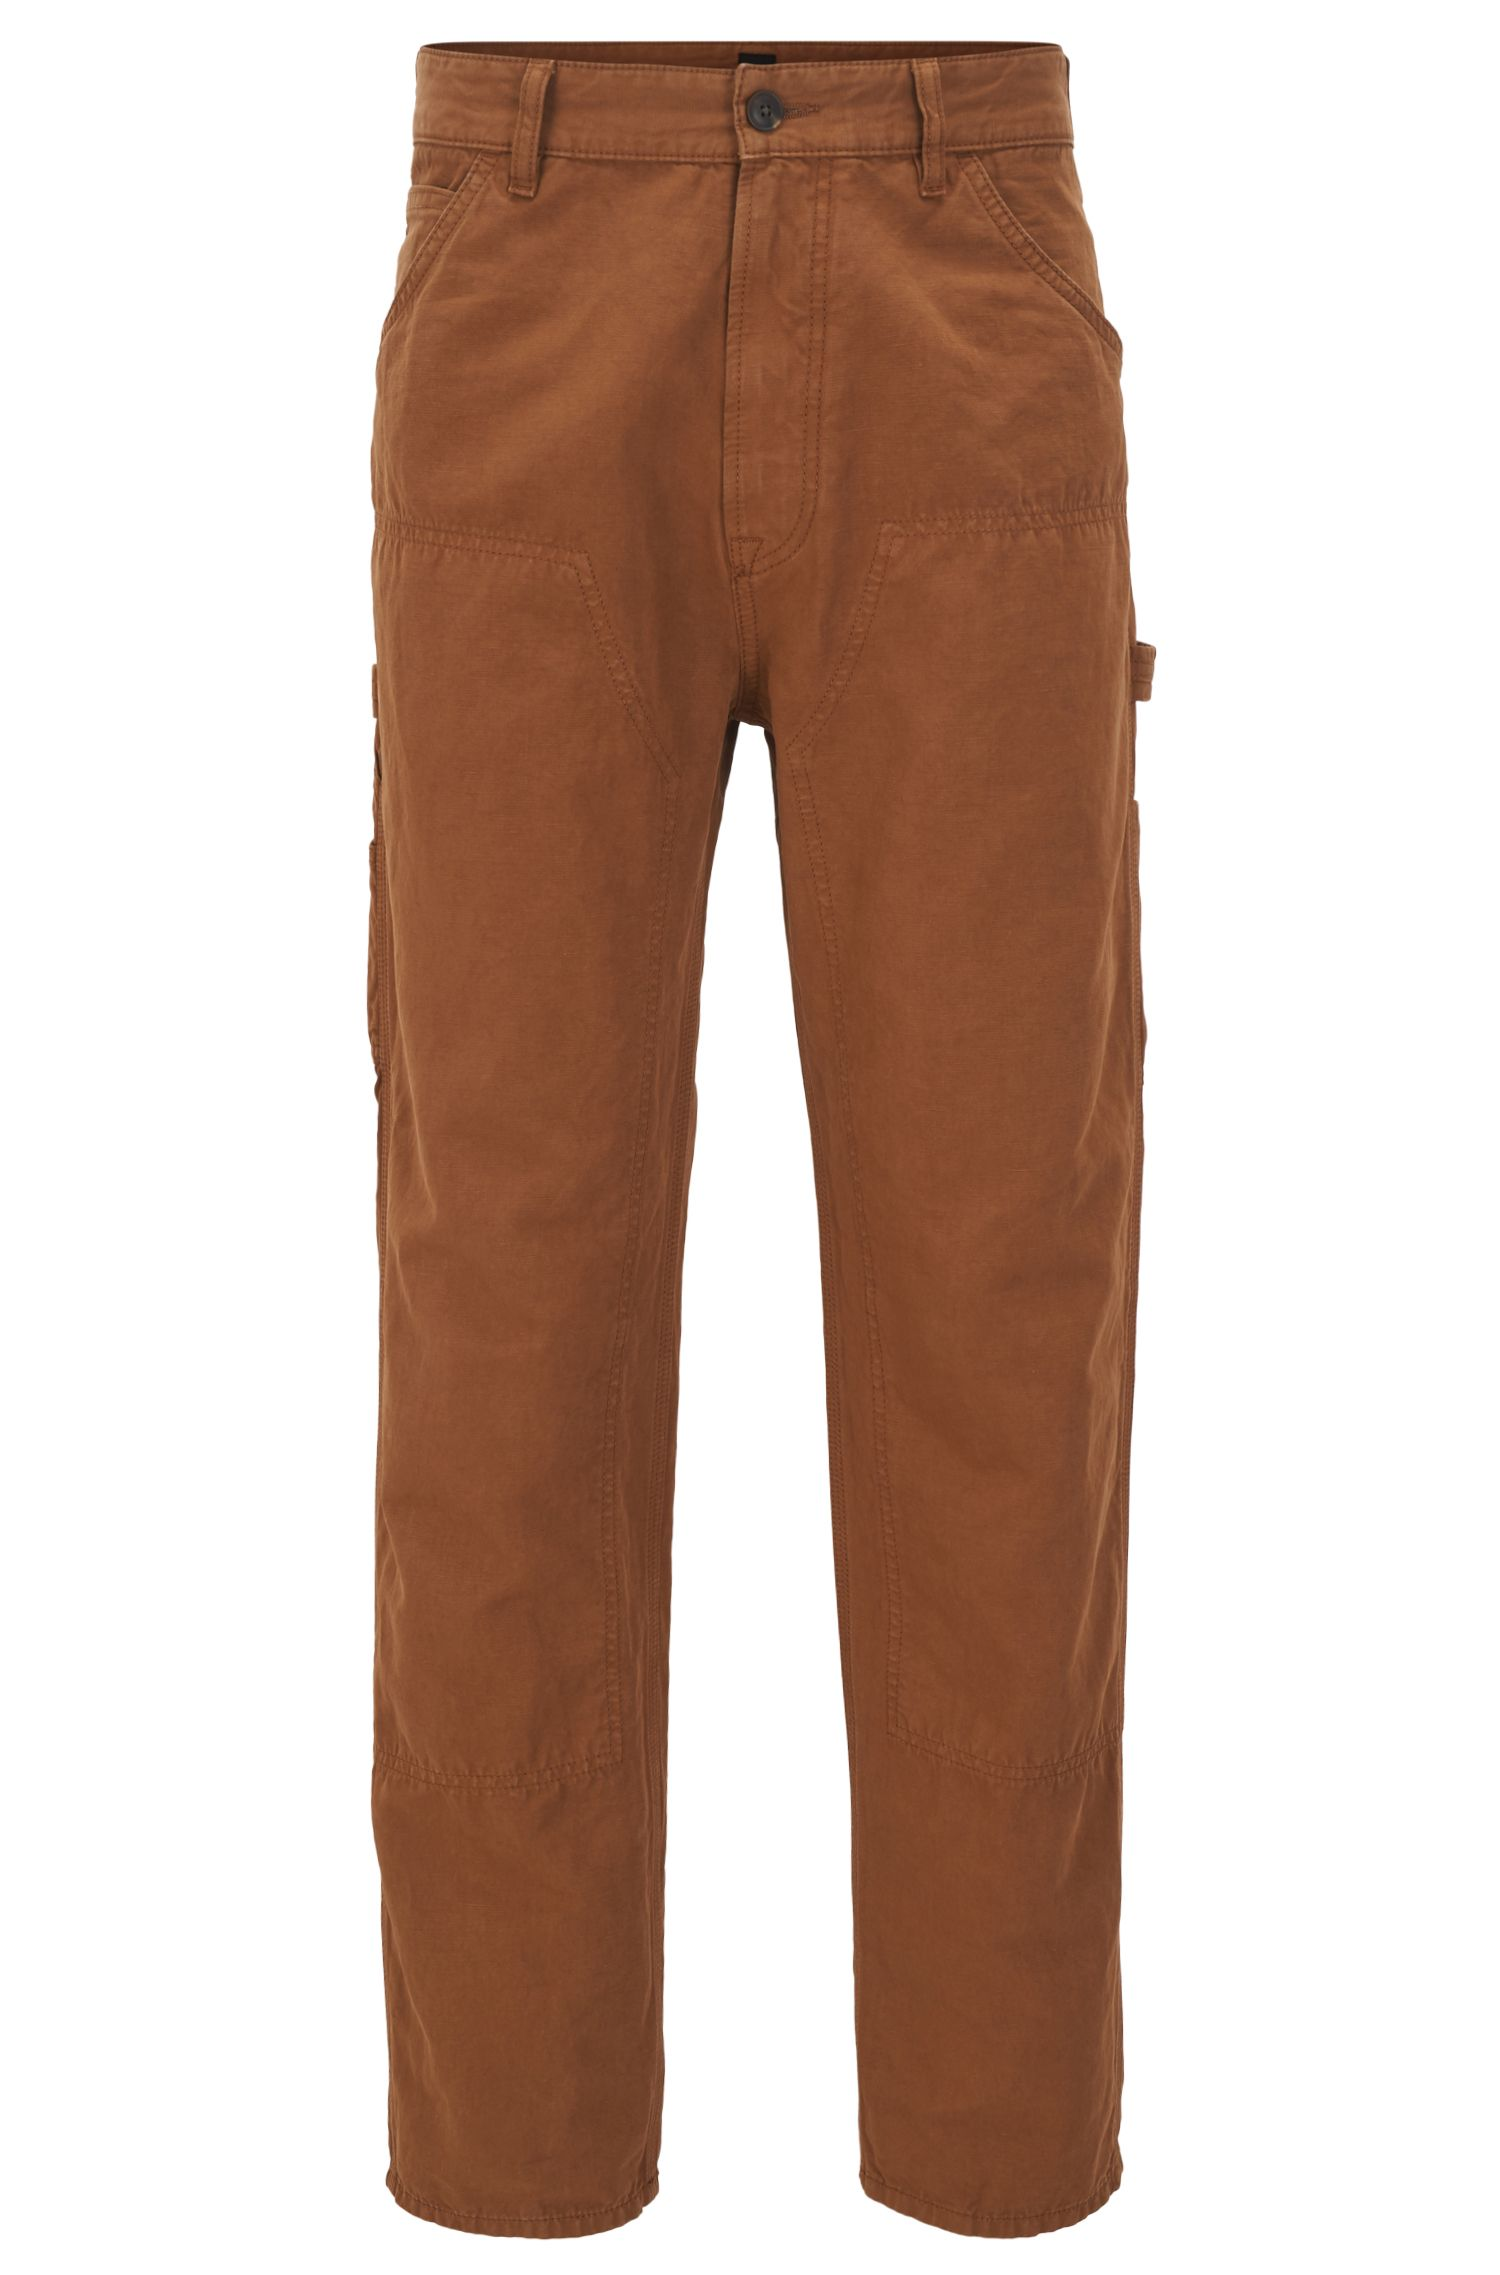 Tapered-fit trousers in a slub cotton blend